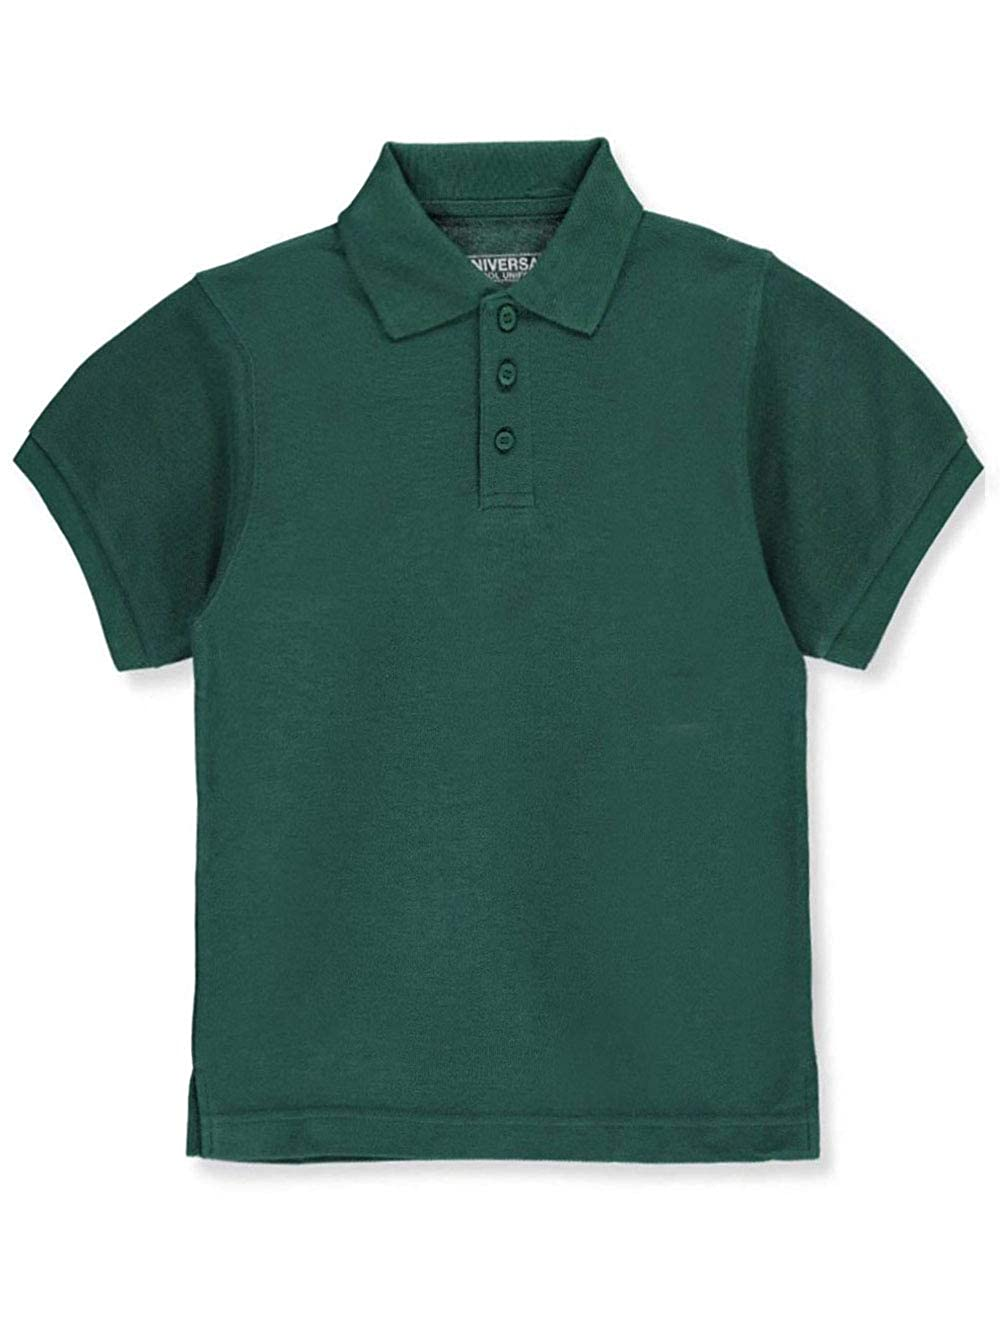 Universal School Uniforms Childrens Short Sleeve Pique Polo Shirt Many Colors Available